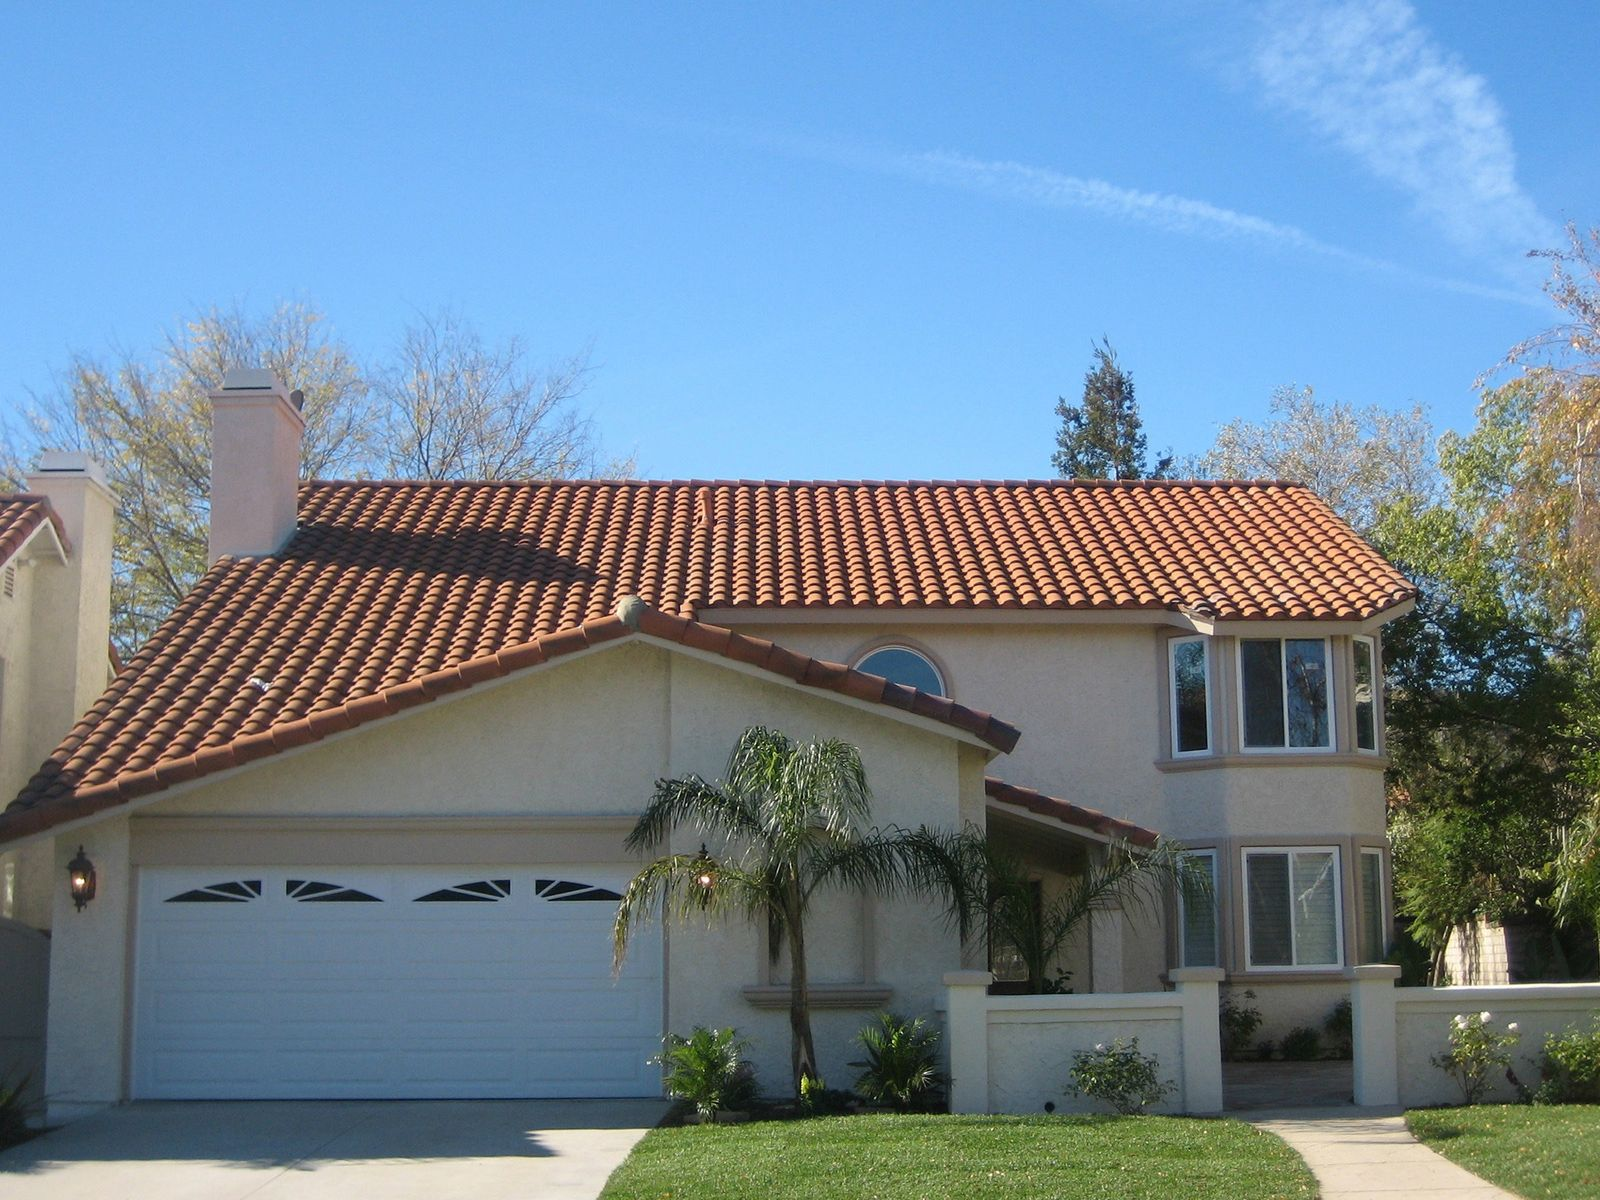 Fabulous Agoura Hills Home, Agoura Hills CA Single Family Home - Los Angeles Real Estate